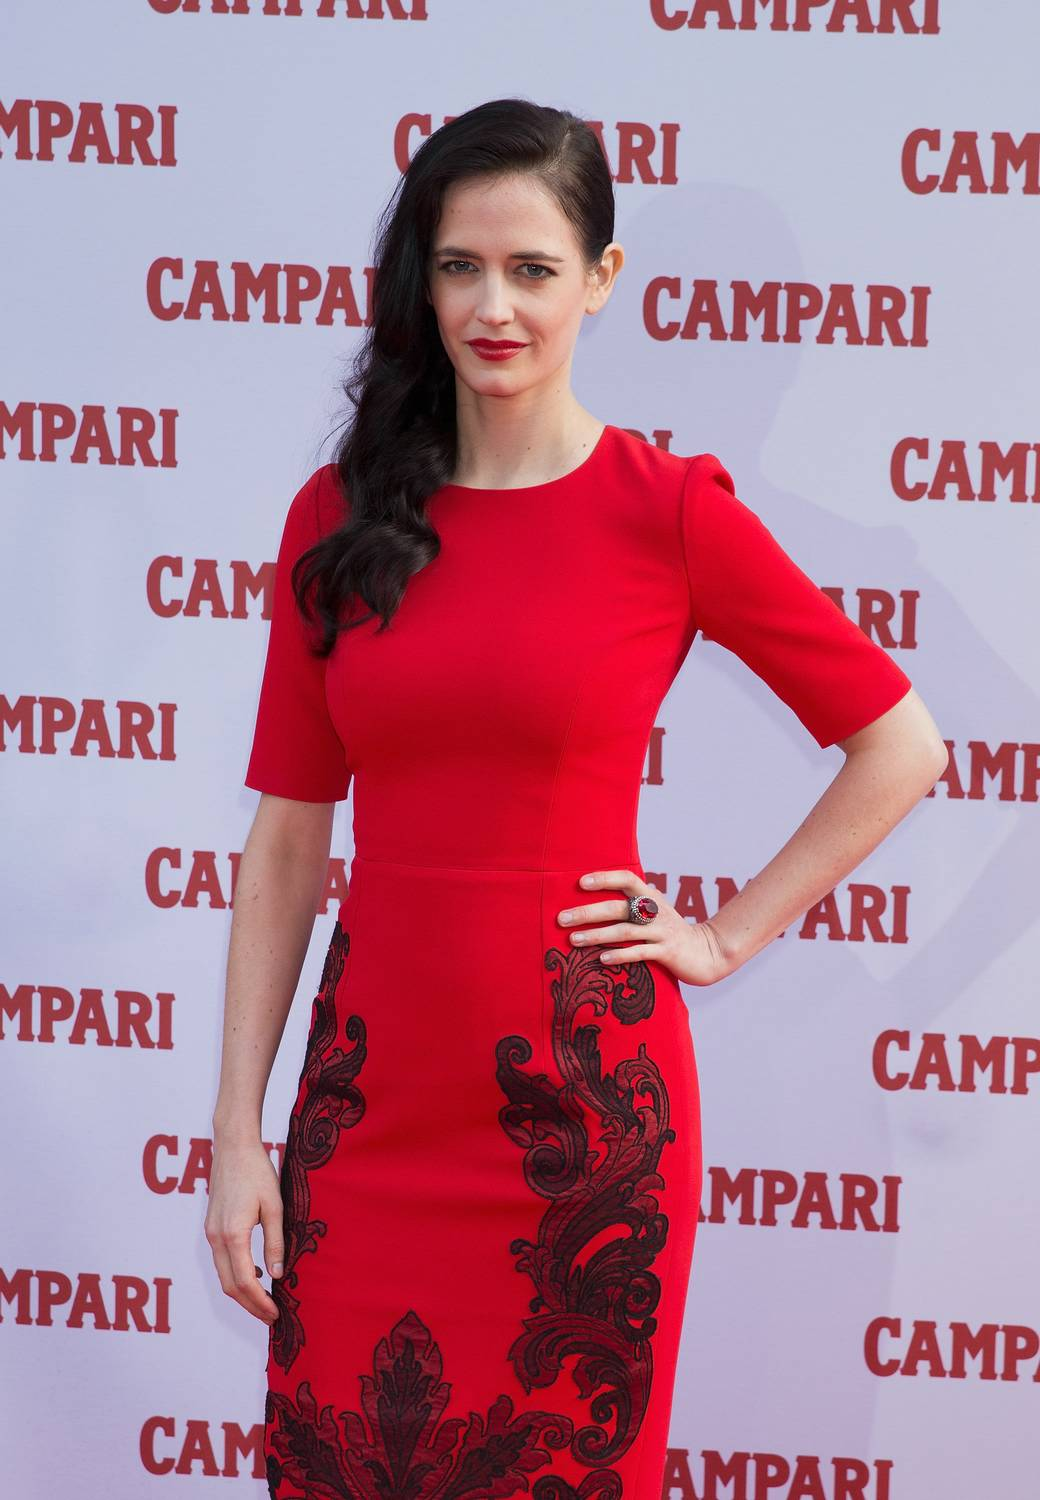 Campari-mythology-eva-green03